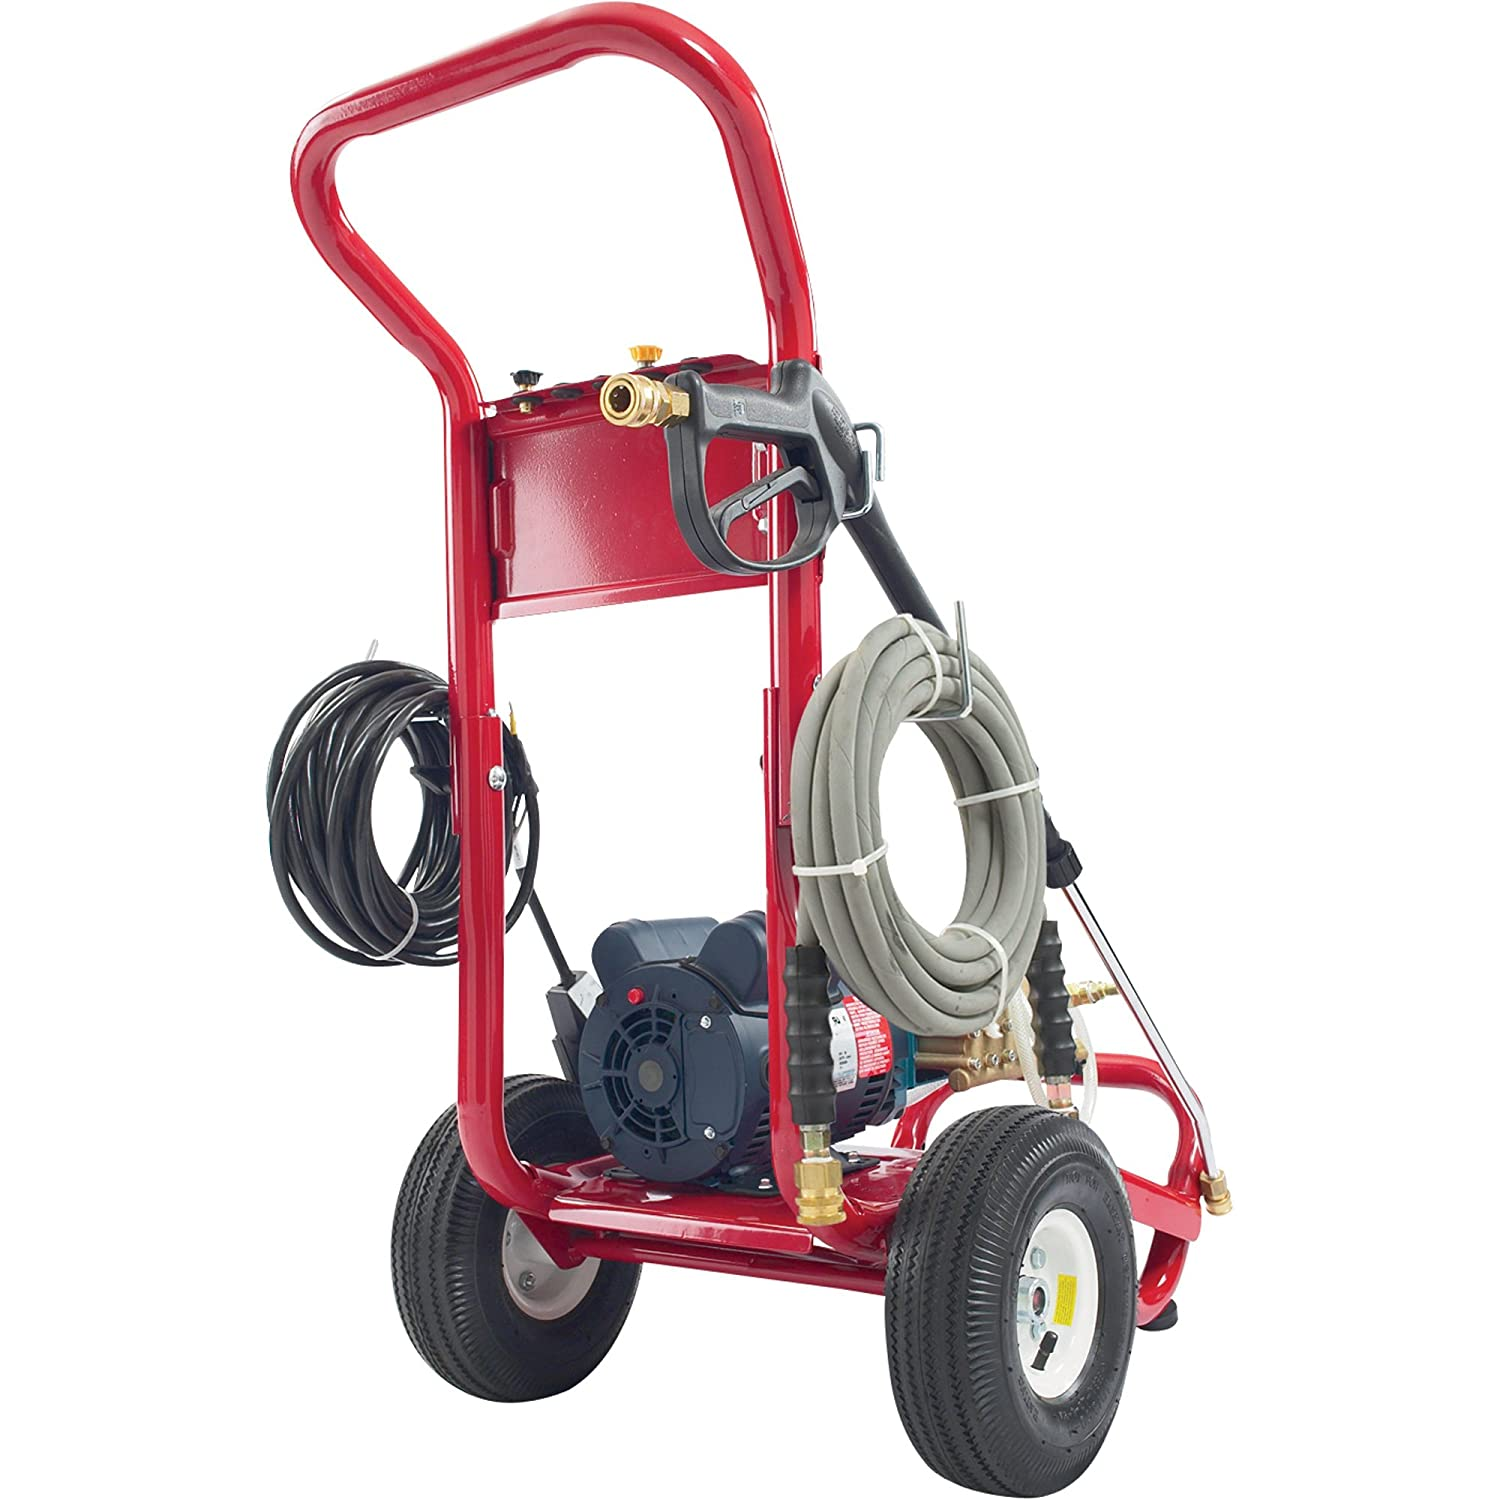 81b9HishzVL._SL1500_ amazon com northstar electric cold water pressure washer 2000  at n-0.co